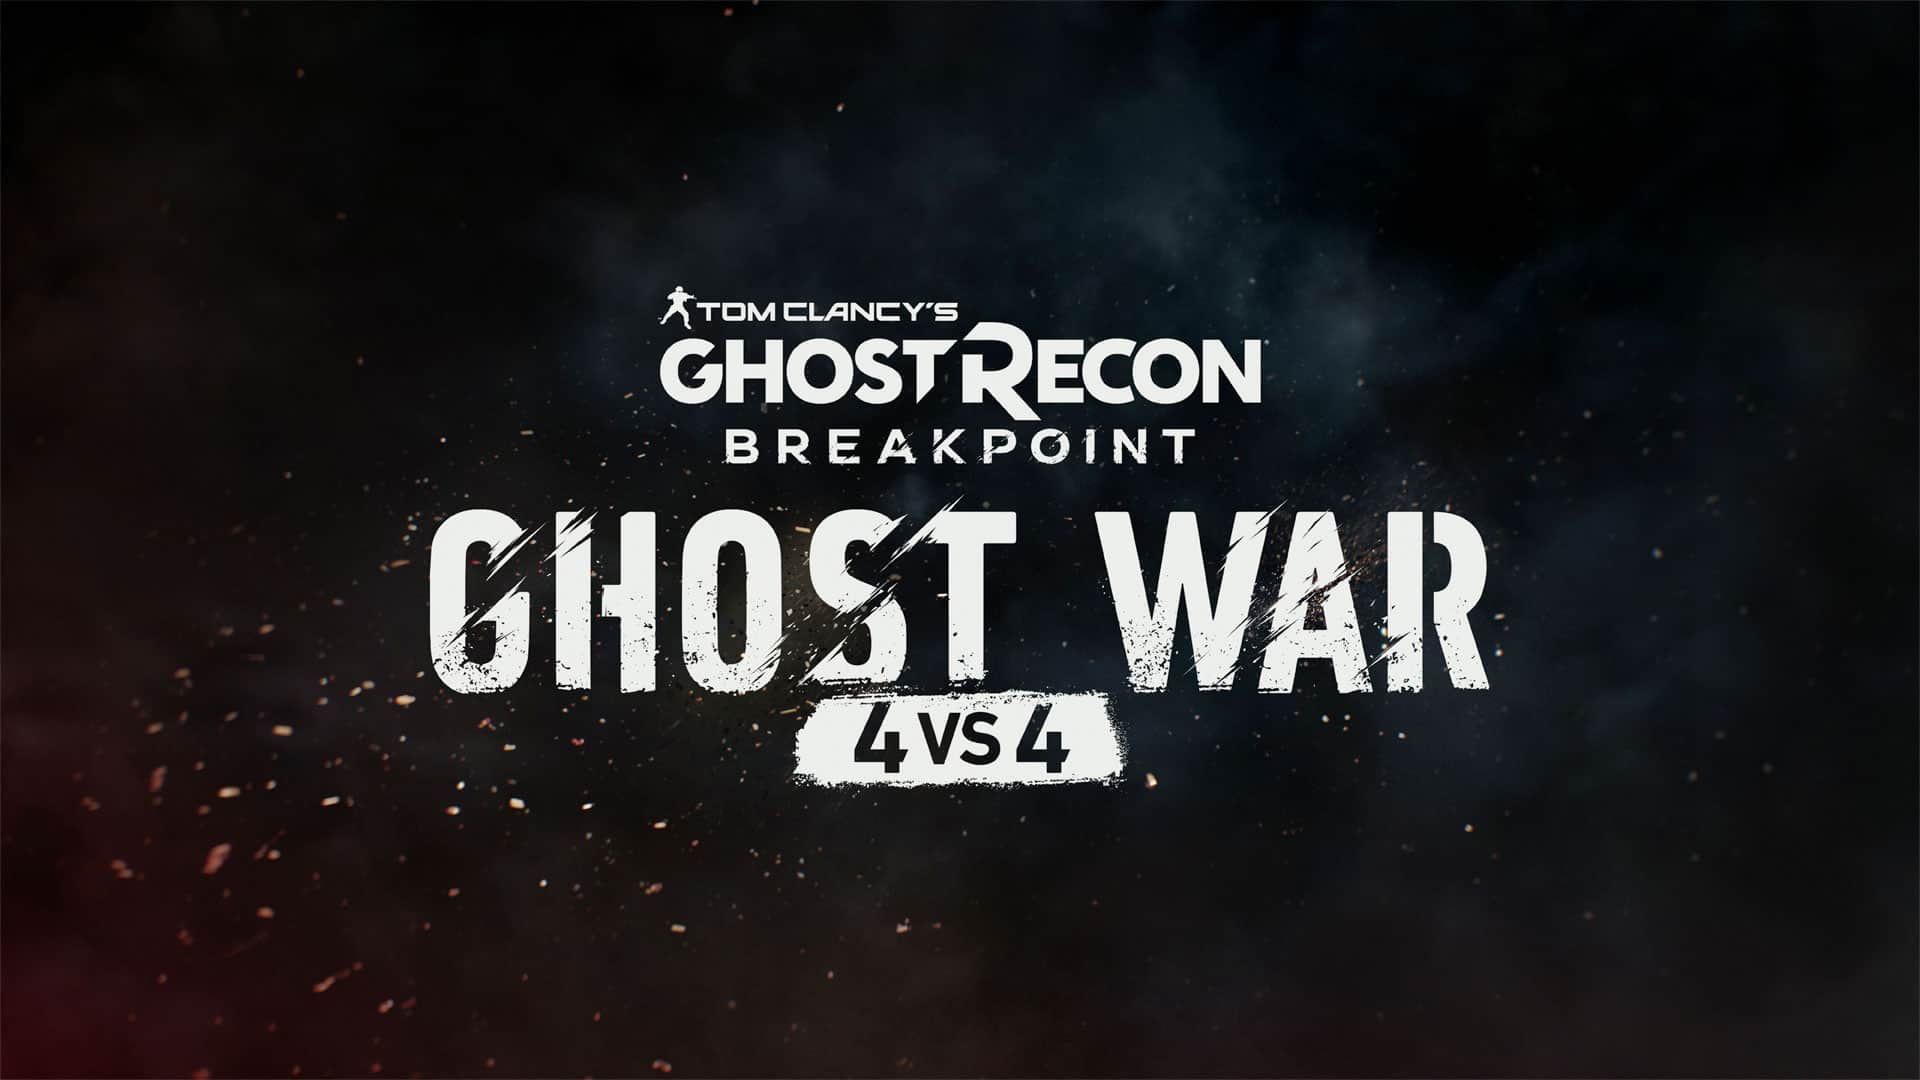 Be The Hunter Or Become The Hunted In Ghost War, Tom Clancy's Ghost Recon Breakpoint PVP Mode